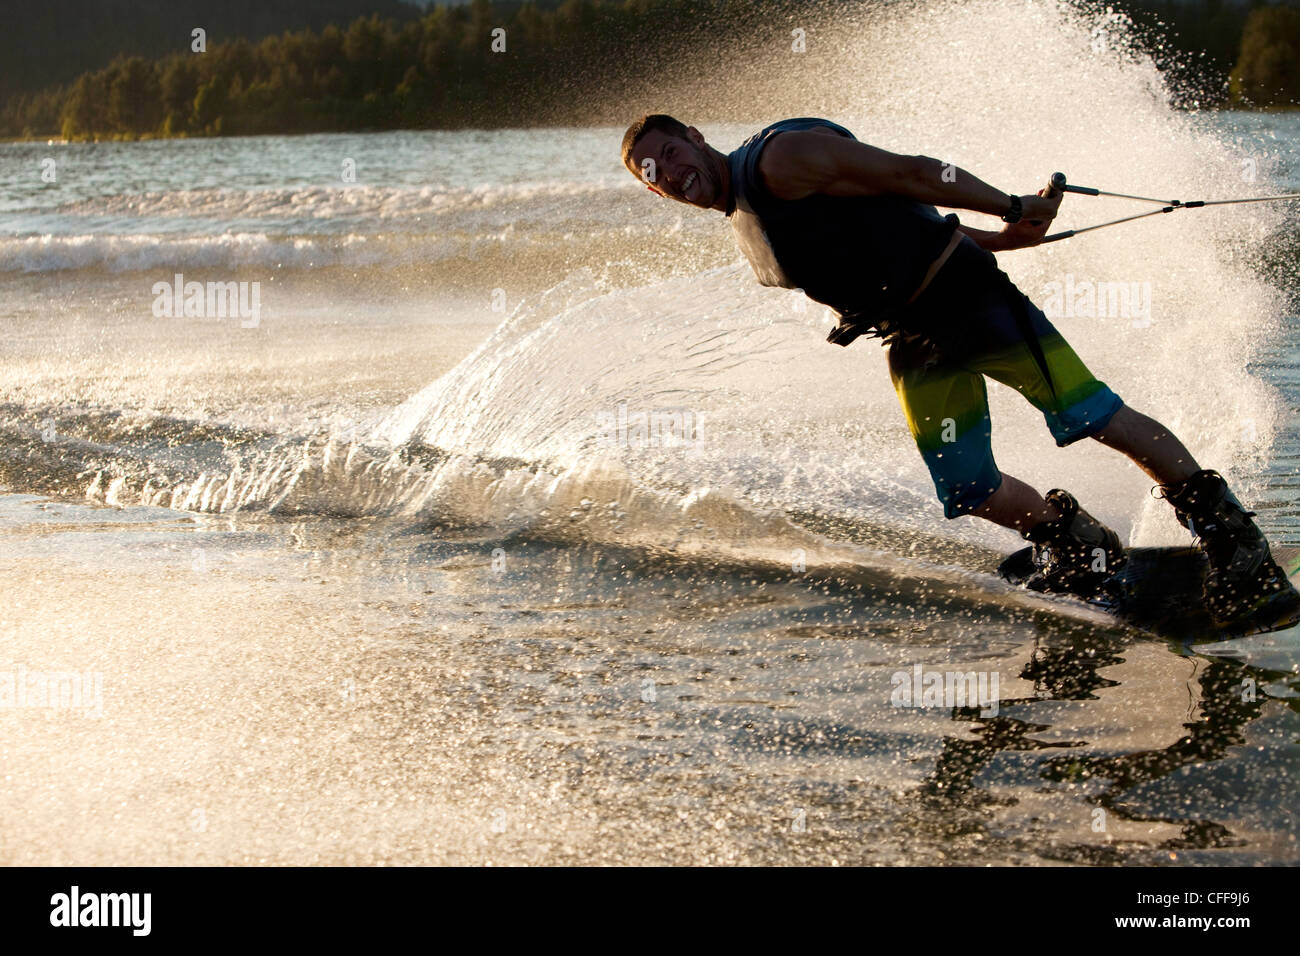 A professional wakeboarder smiles while he carves and slashes on Lake Pend Oreille at sunset in Sandpoint, Idaho. - Stock Image